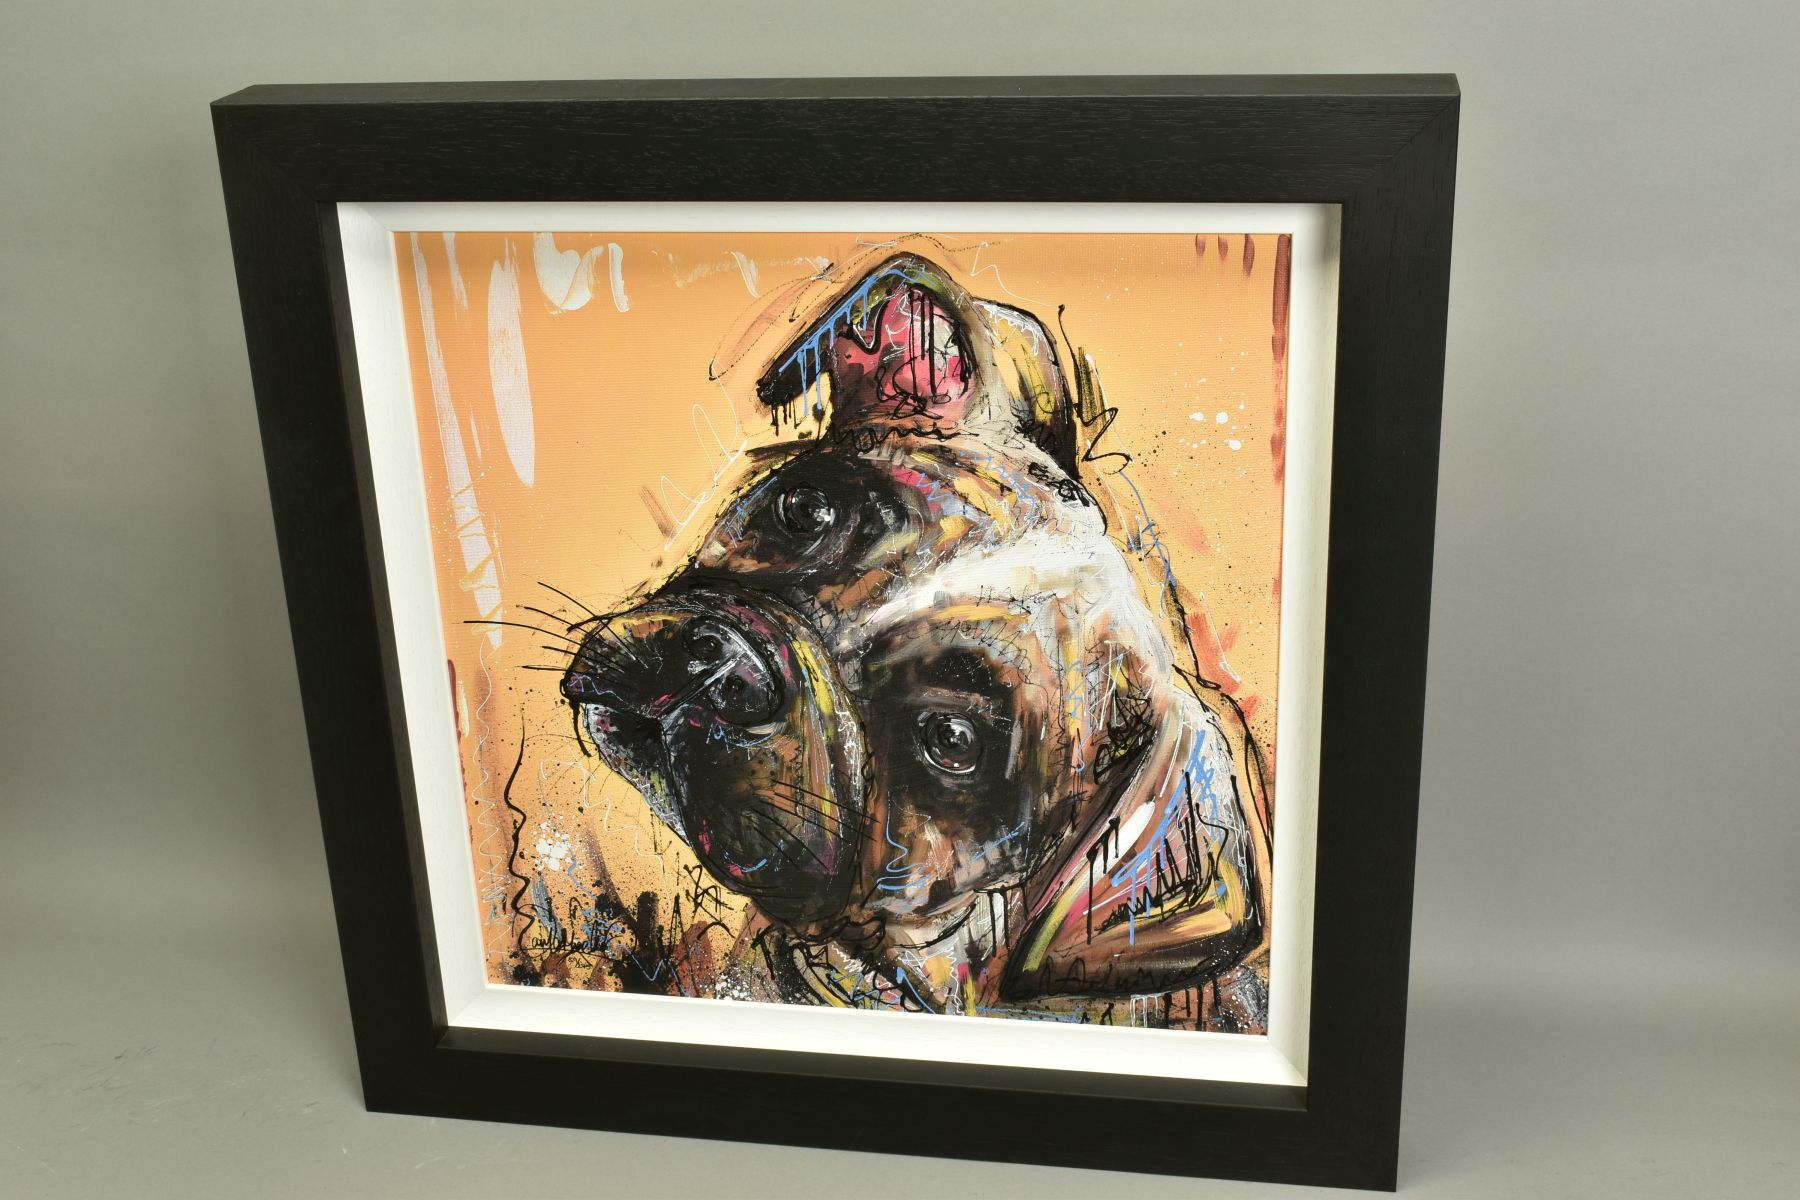 SAMANTHA ELLIS (BRITISH 1992), 'All Ears', a Limited Edition print of a small dog, signed bottom - Image 5 of 6